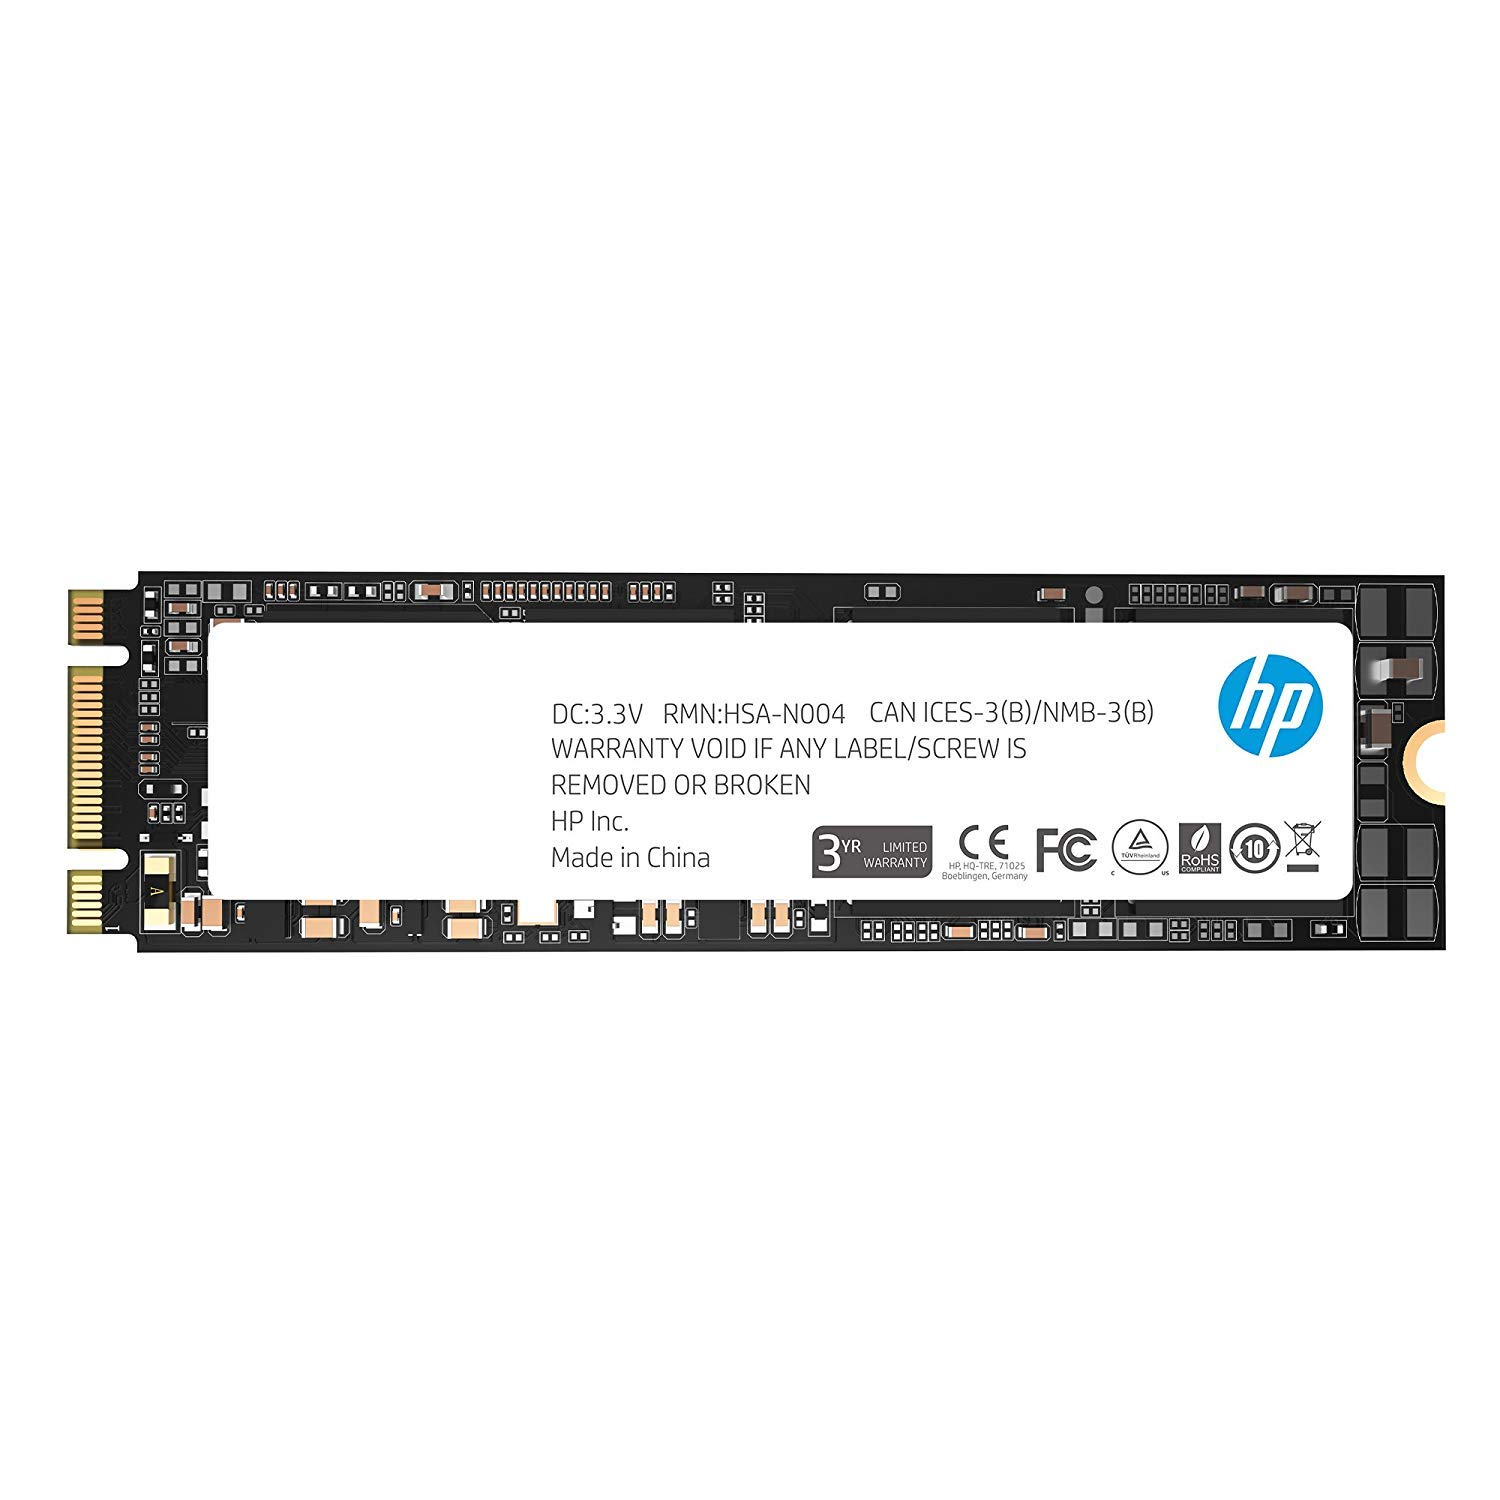 HP SSD S700 M.2 250GB SATA III 3D TLC NAND Internal Solid